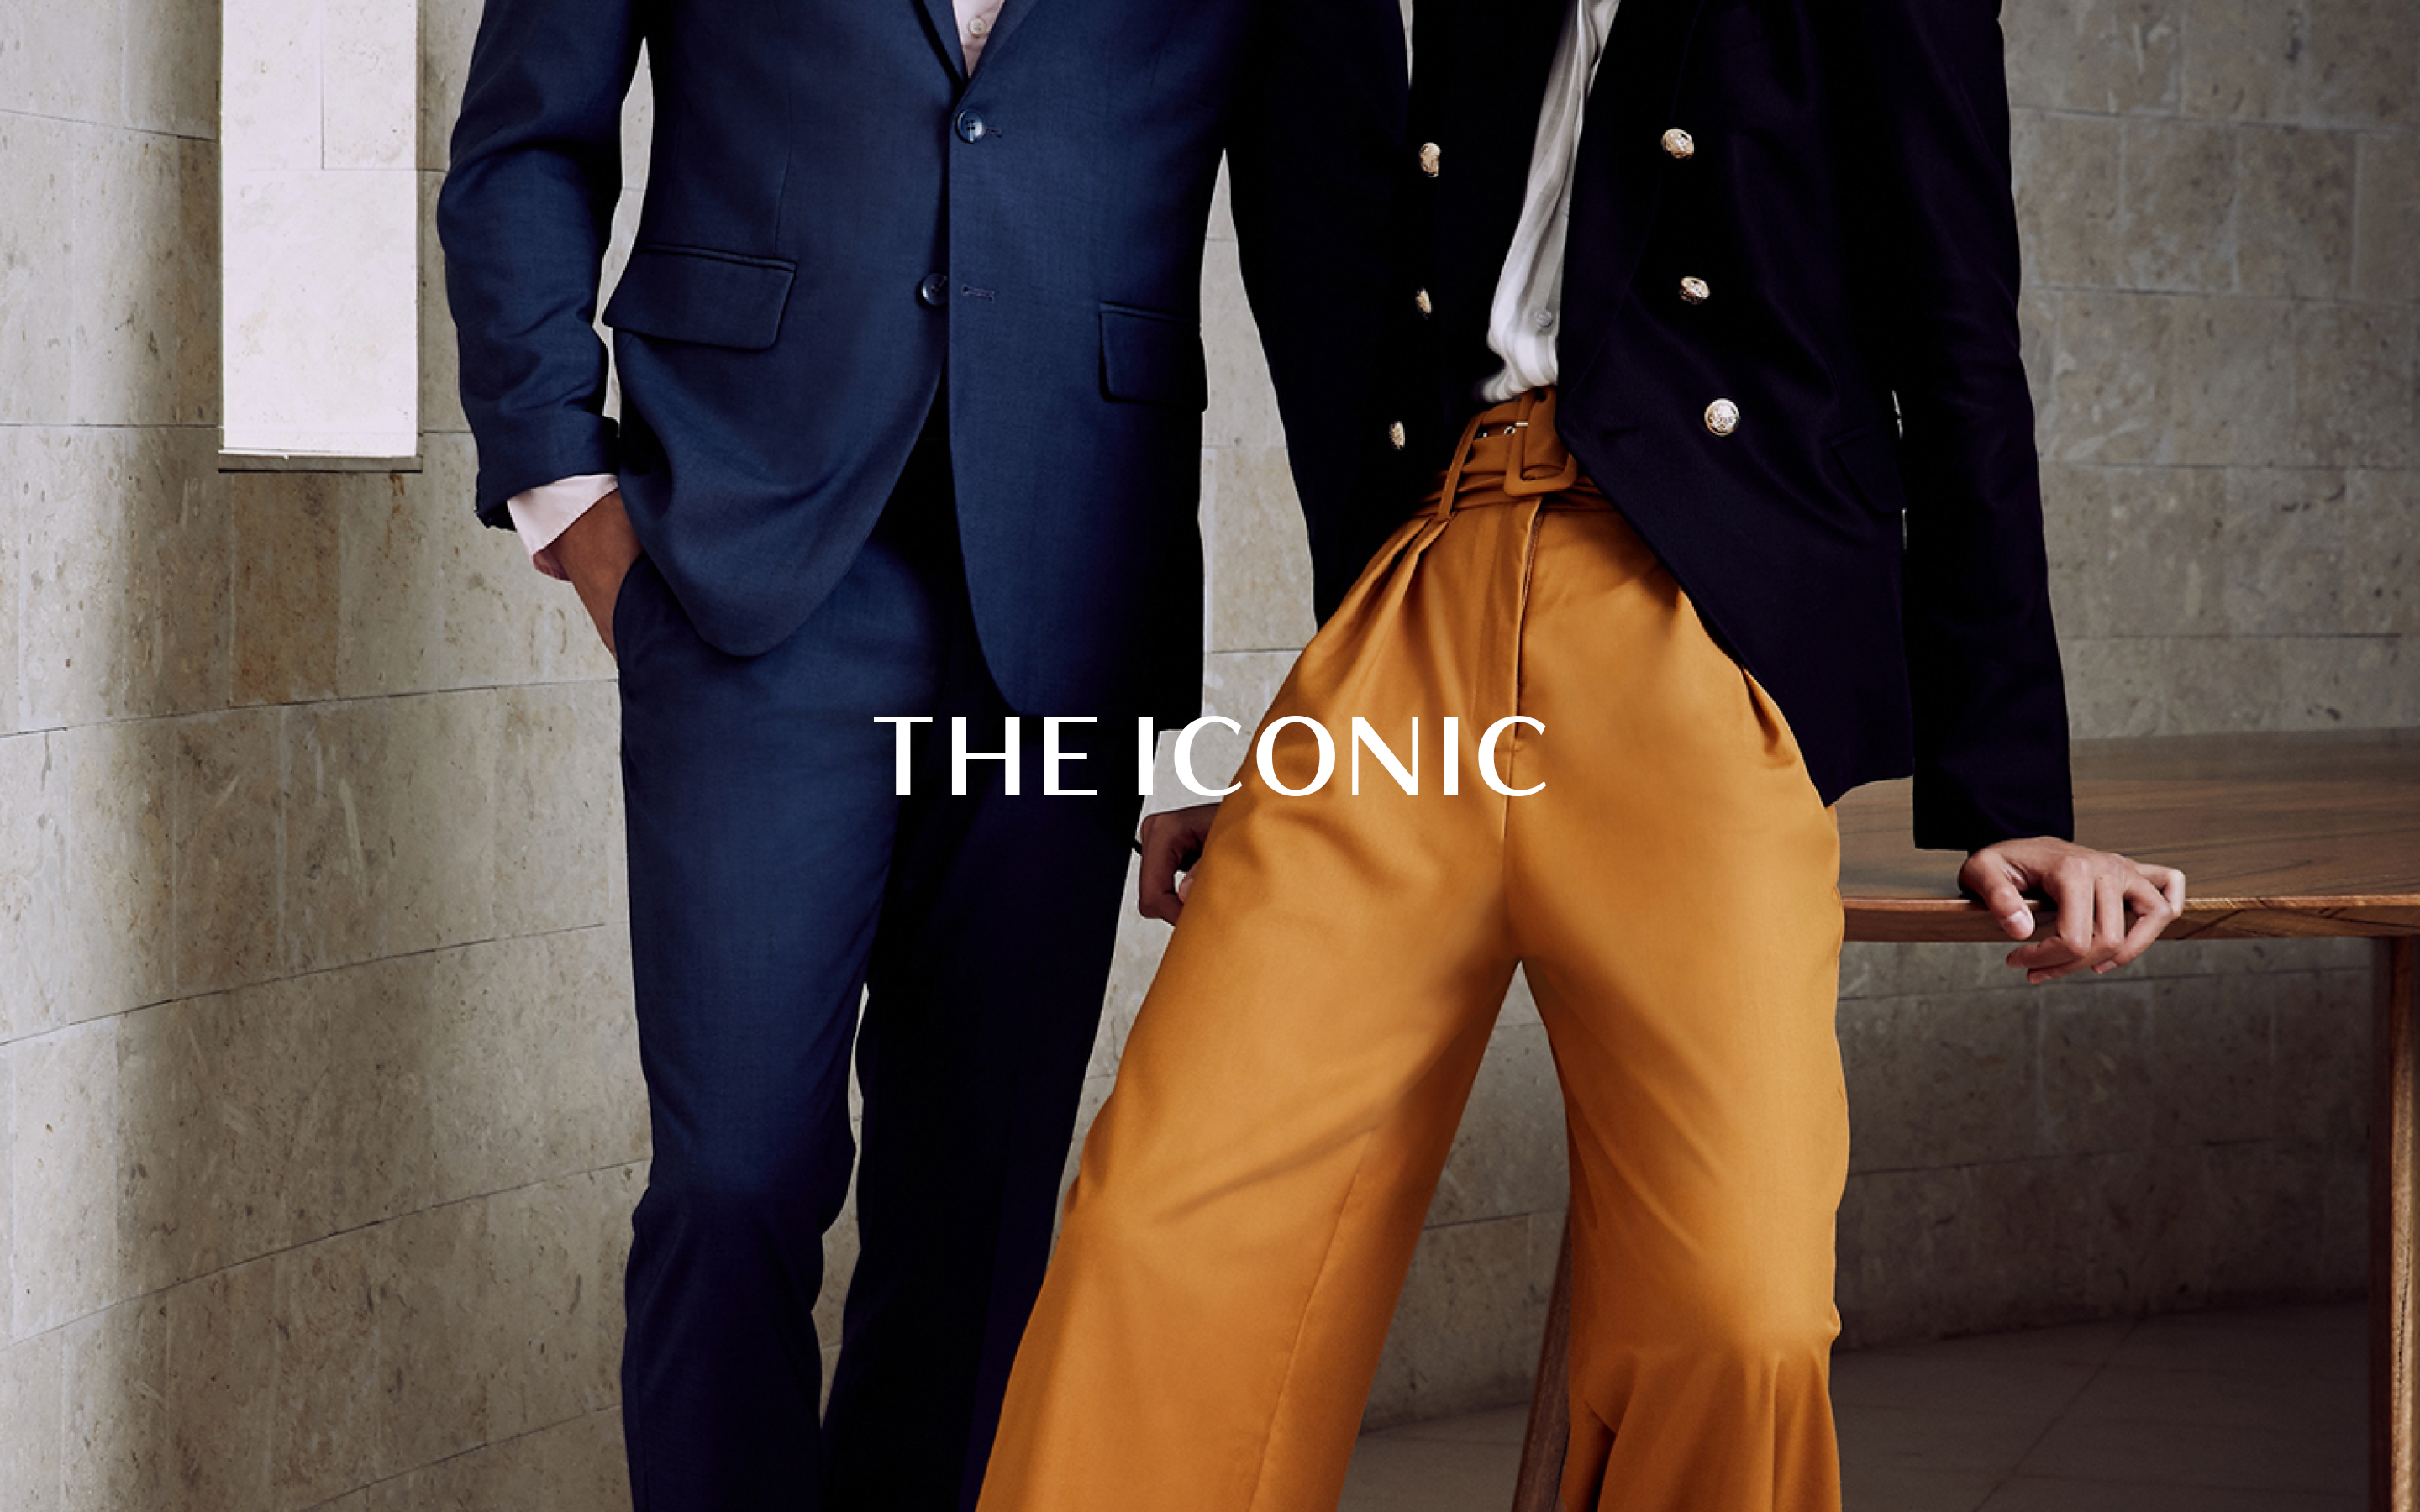 Two smartly dressed people modelling against a wooden table